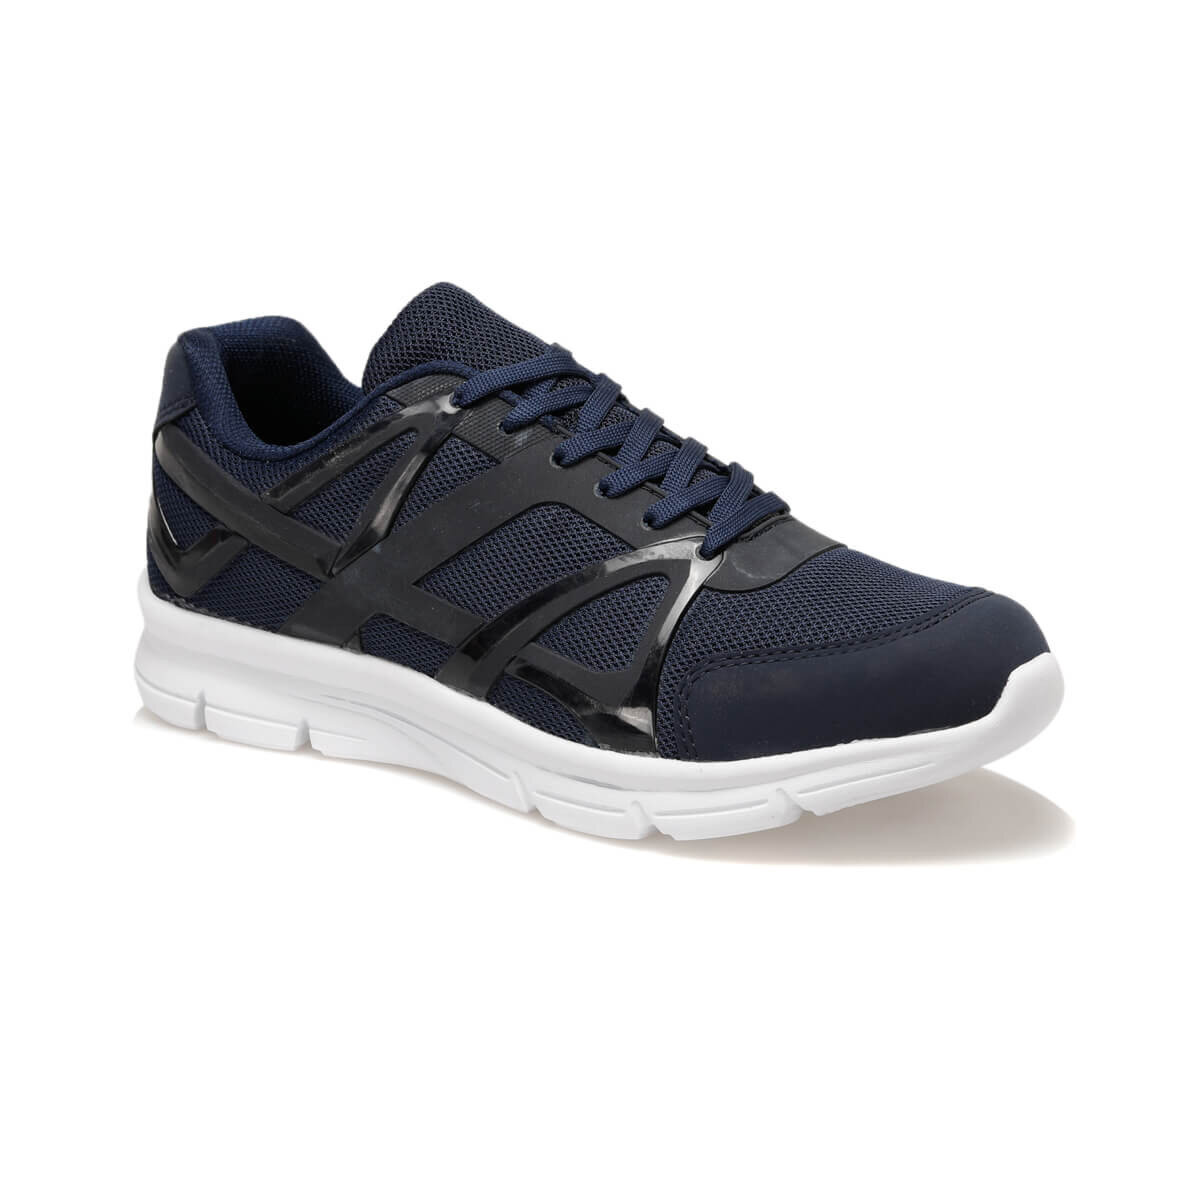 FLO NABEL 9PR Navy Blue Men 'S Sports Shoes Torex